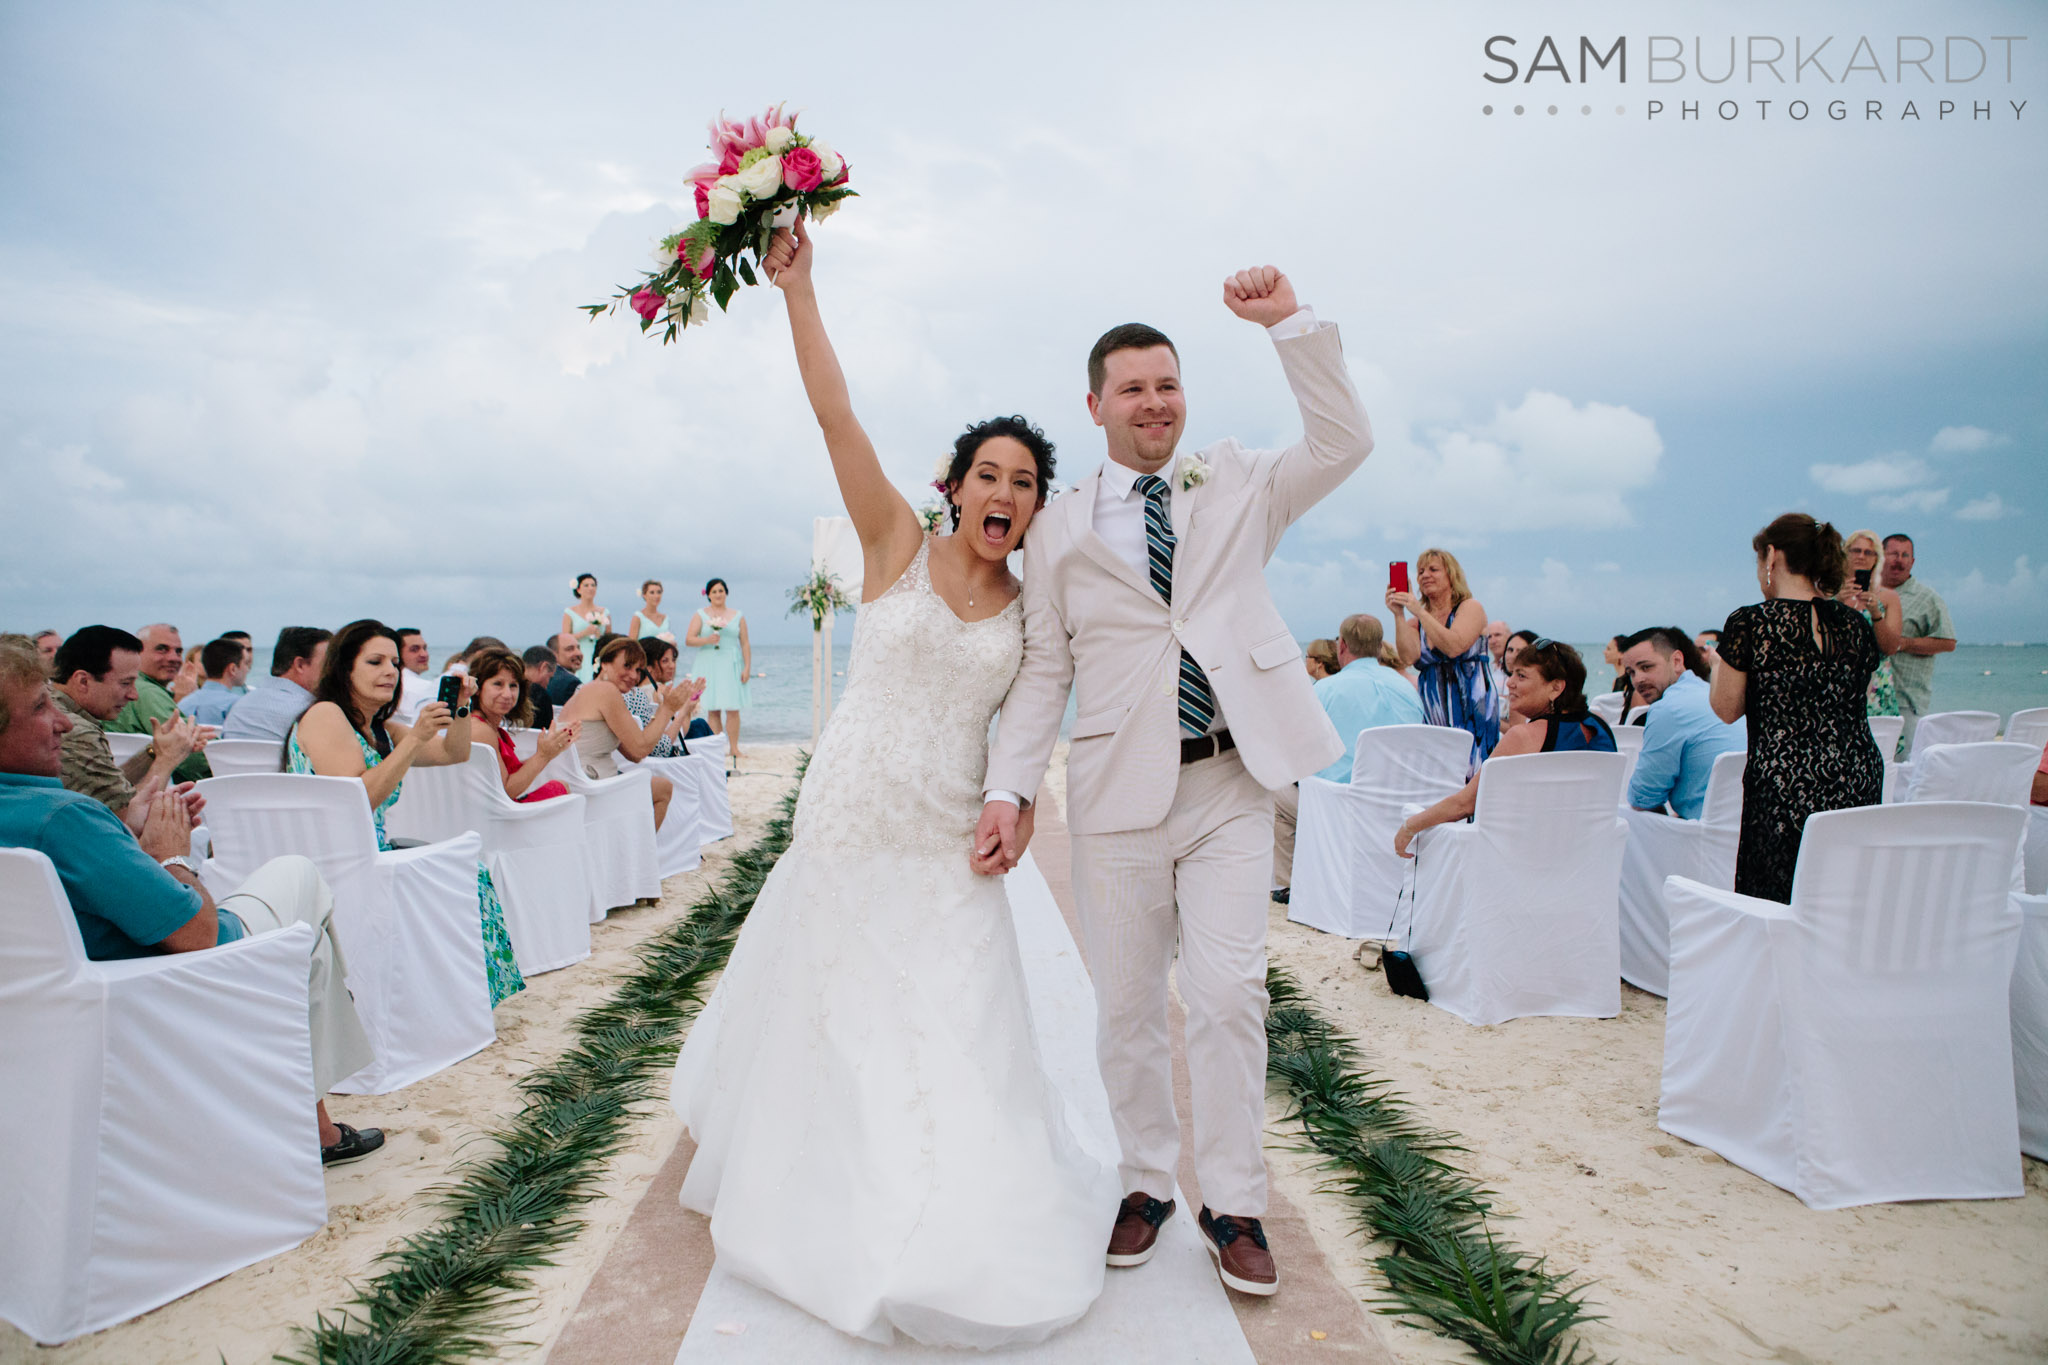 samburkardt-mexico-wedding-beach-0042.jpg